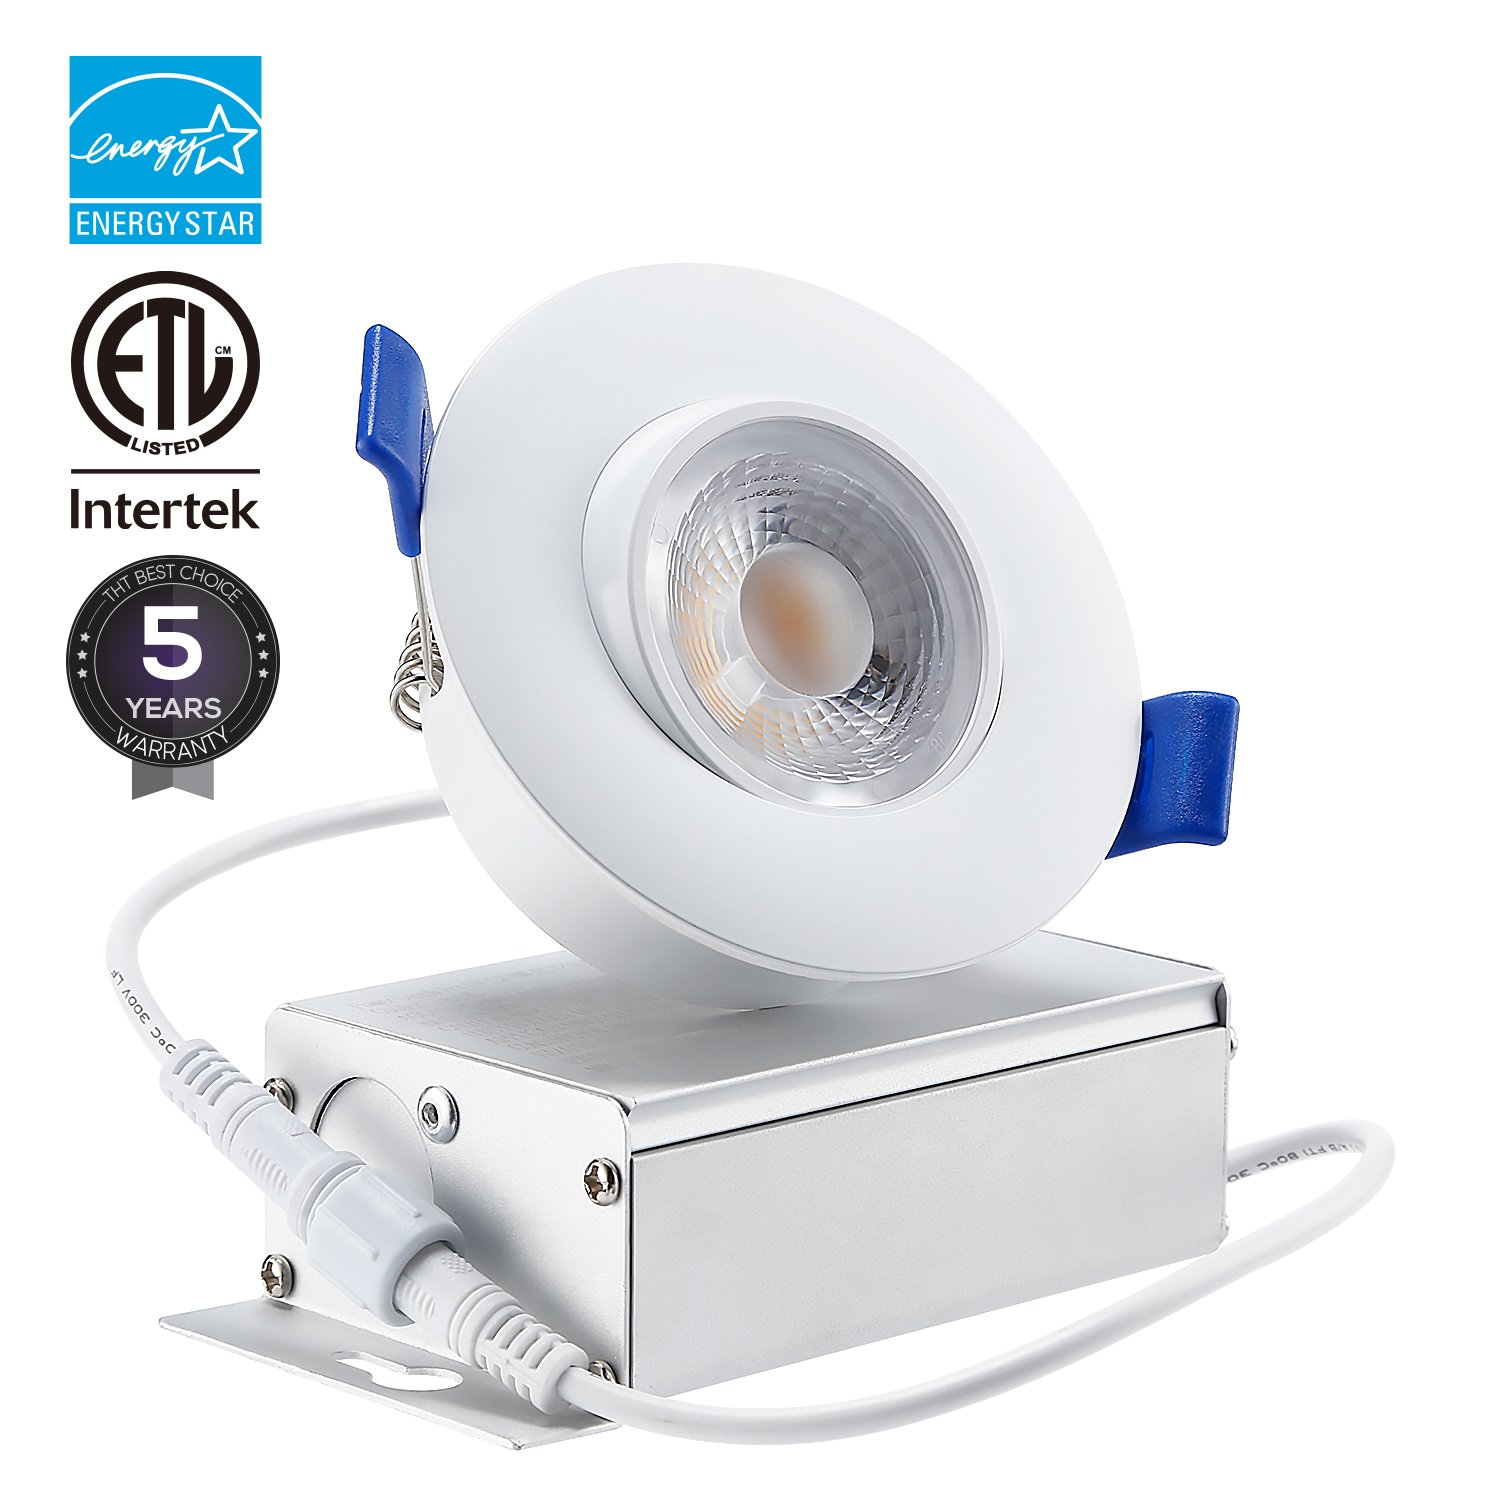 TORCHSTAR 3 Inches Gimbal LED Recessed Light with Junction Box, 8W (55W Equiv.) Dimmable Downlight, ETL & Energy Star Listed, 5000K Daylight, 5 Years Warranty